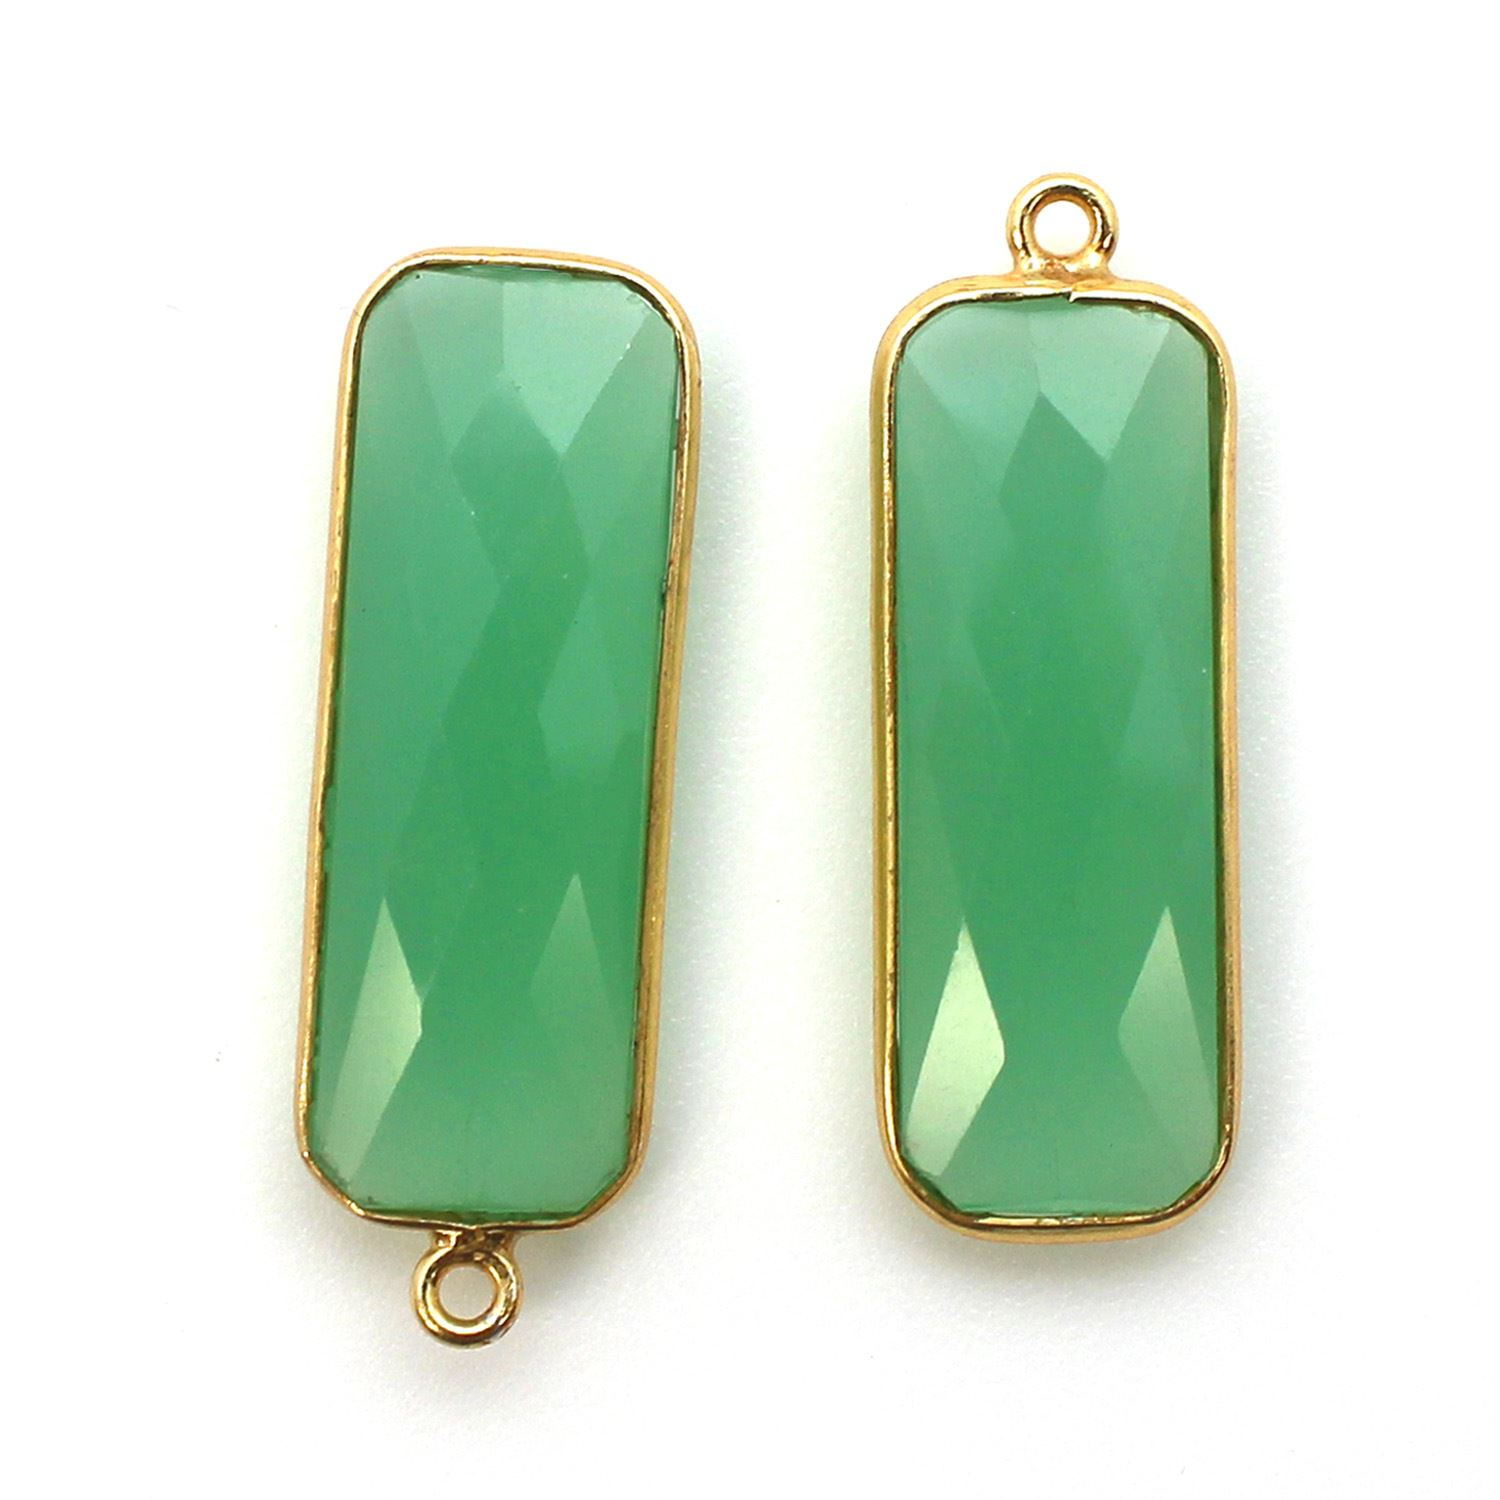 Bezel Charm Pendant-Vermeil Charm-Gold Plated -Prehnite Chalcedony-Elongated Rectangle-34 by 11mm  (Sold per 2 pieces)